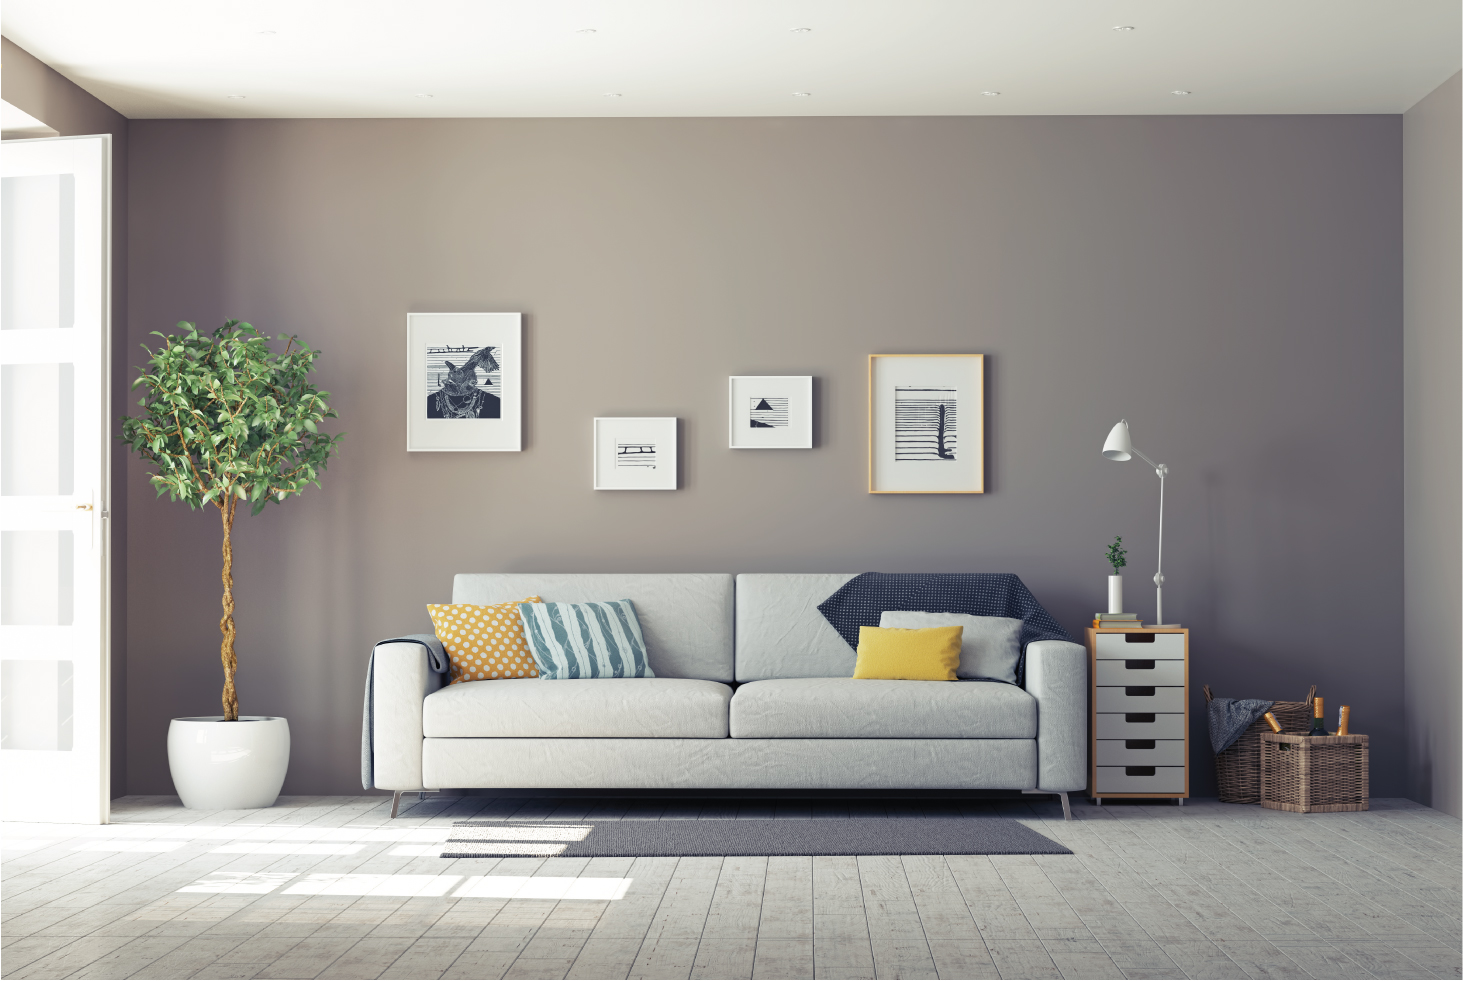 uk-home-improvement-painted